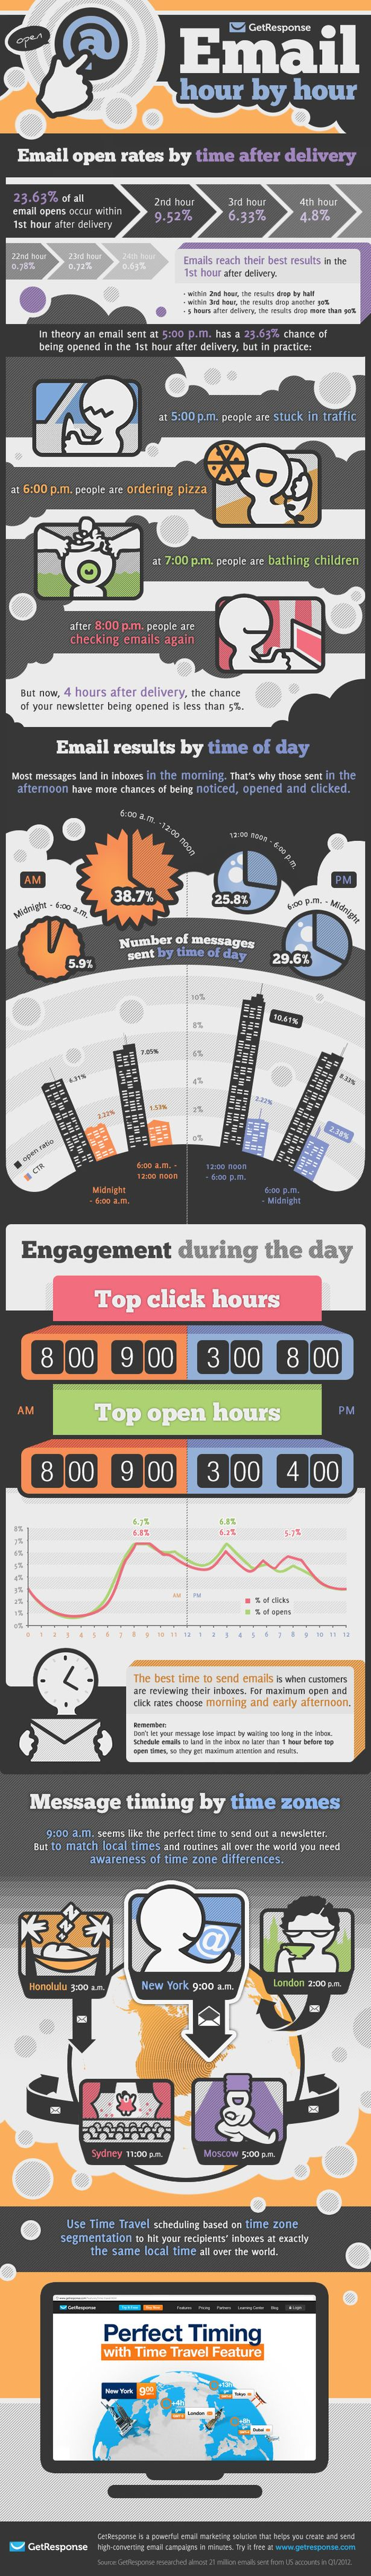 What's the Best Time of Day to Send Emails? [INFOGRAPHIC] (Published: November 9, 2012)